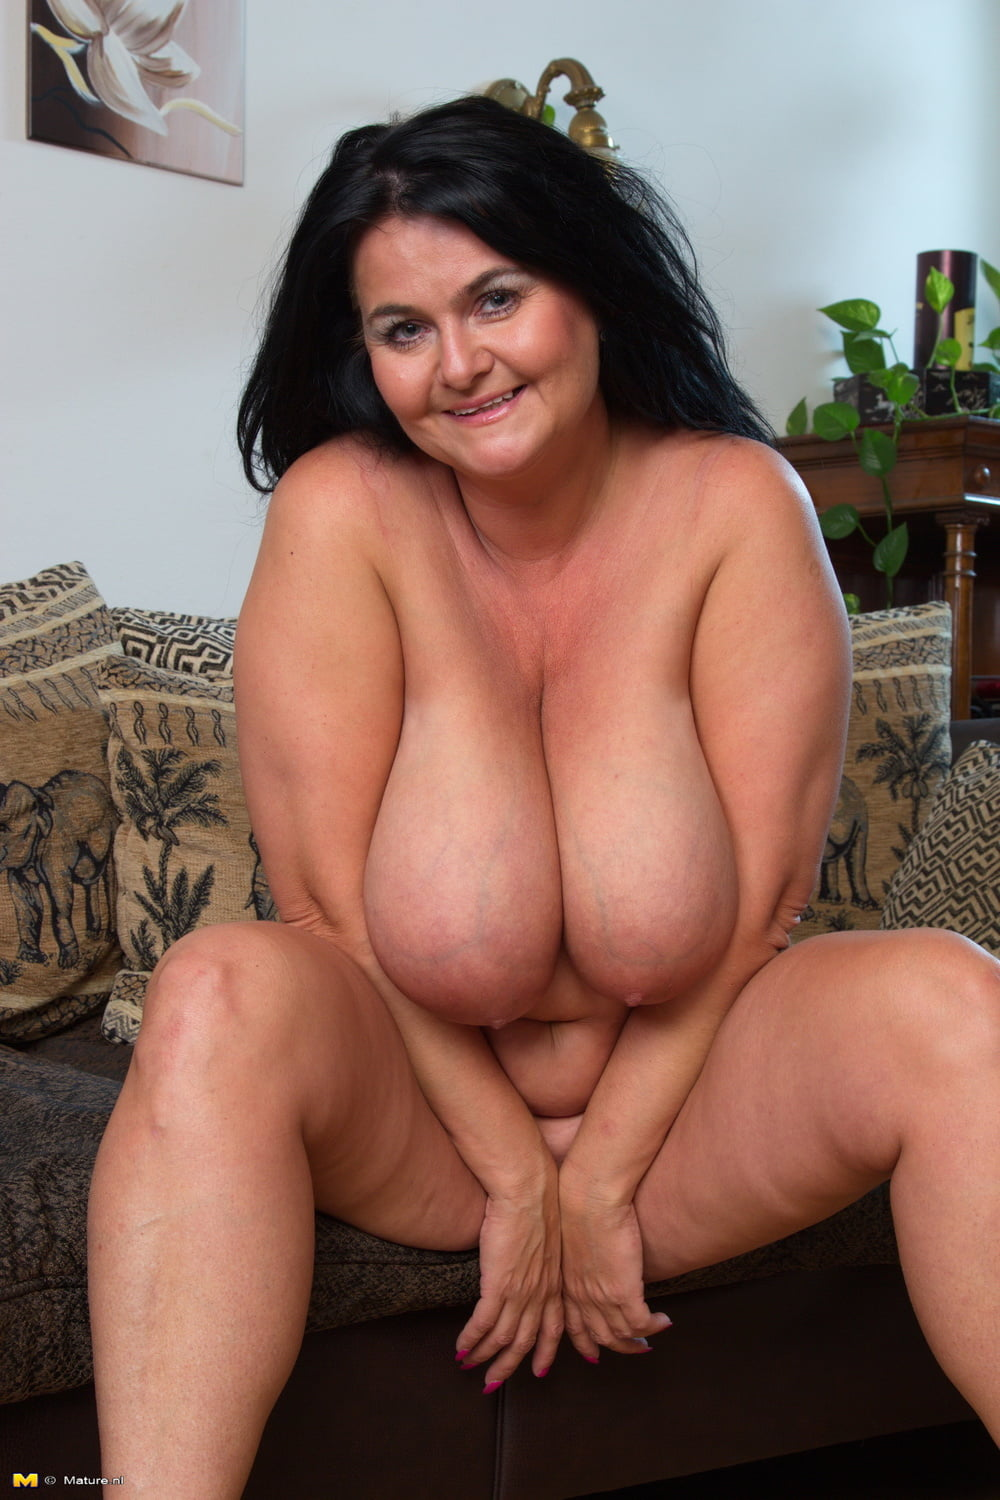 Nude pictures of big lady 8